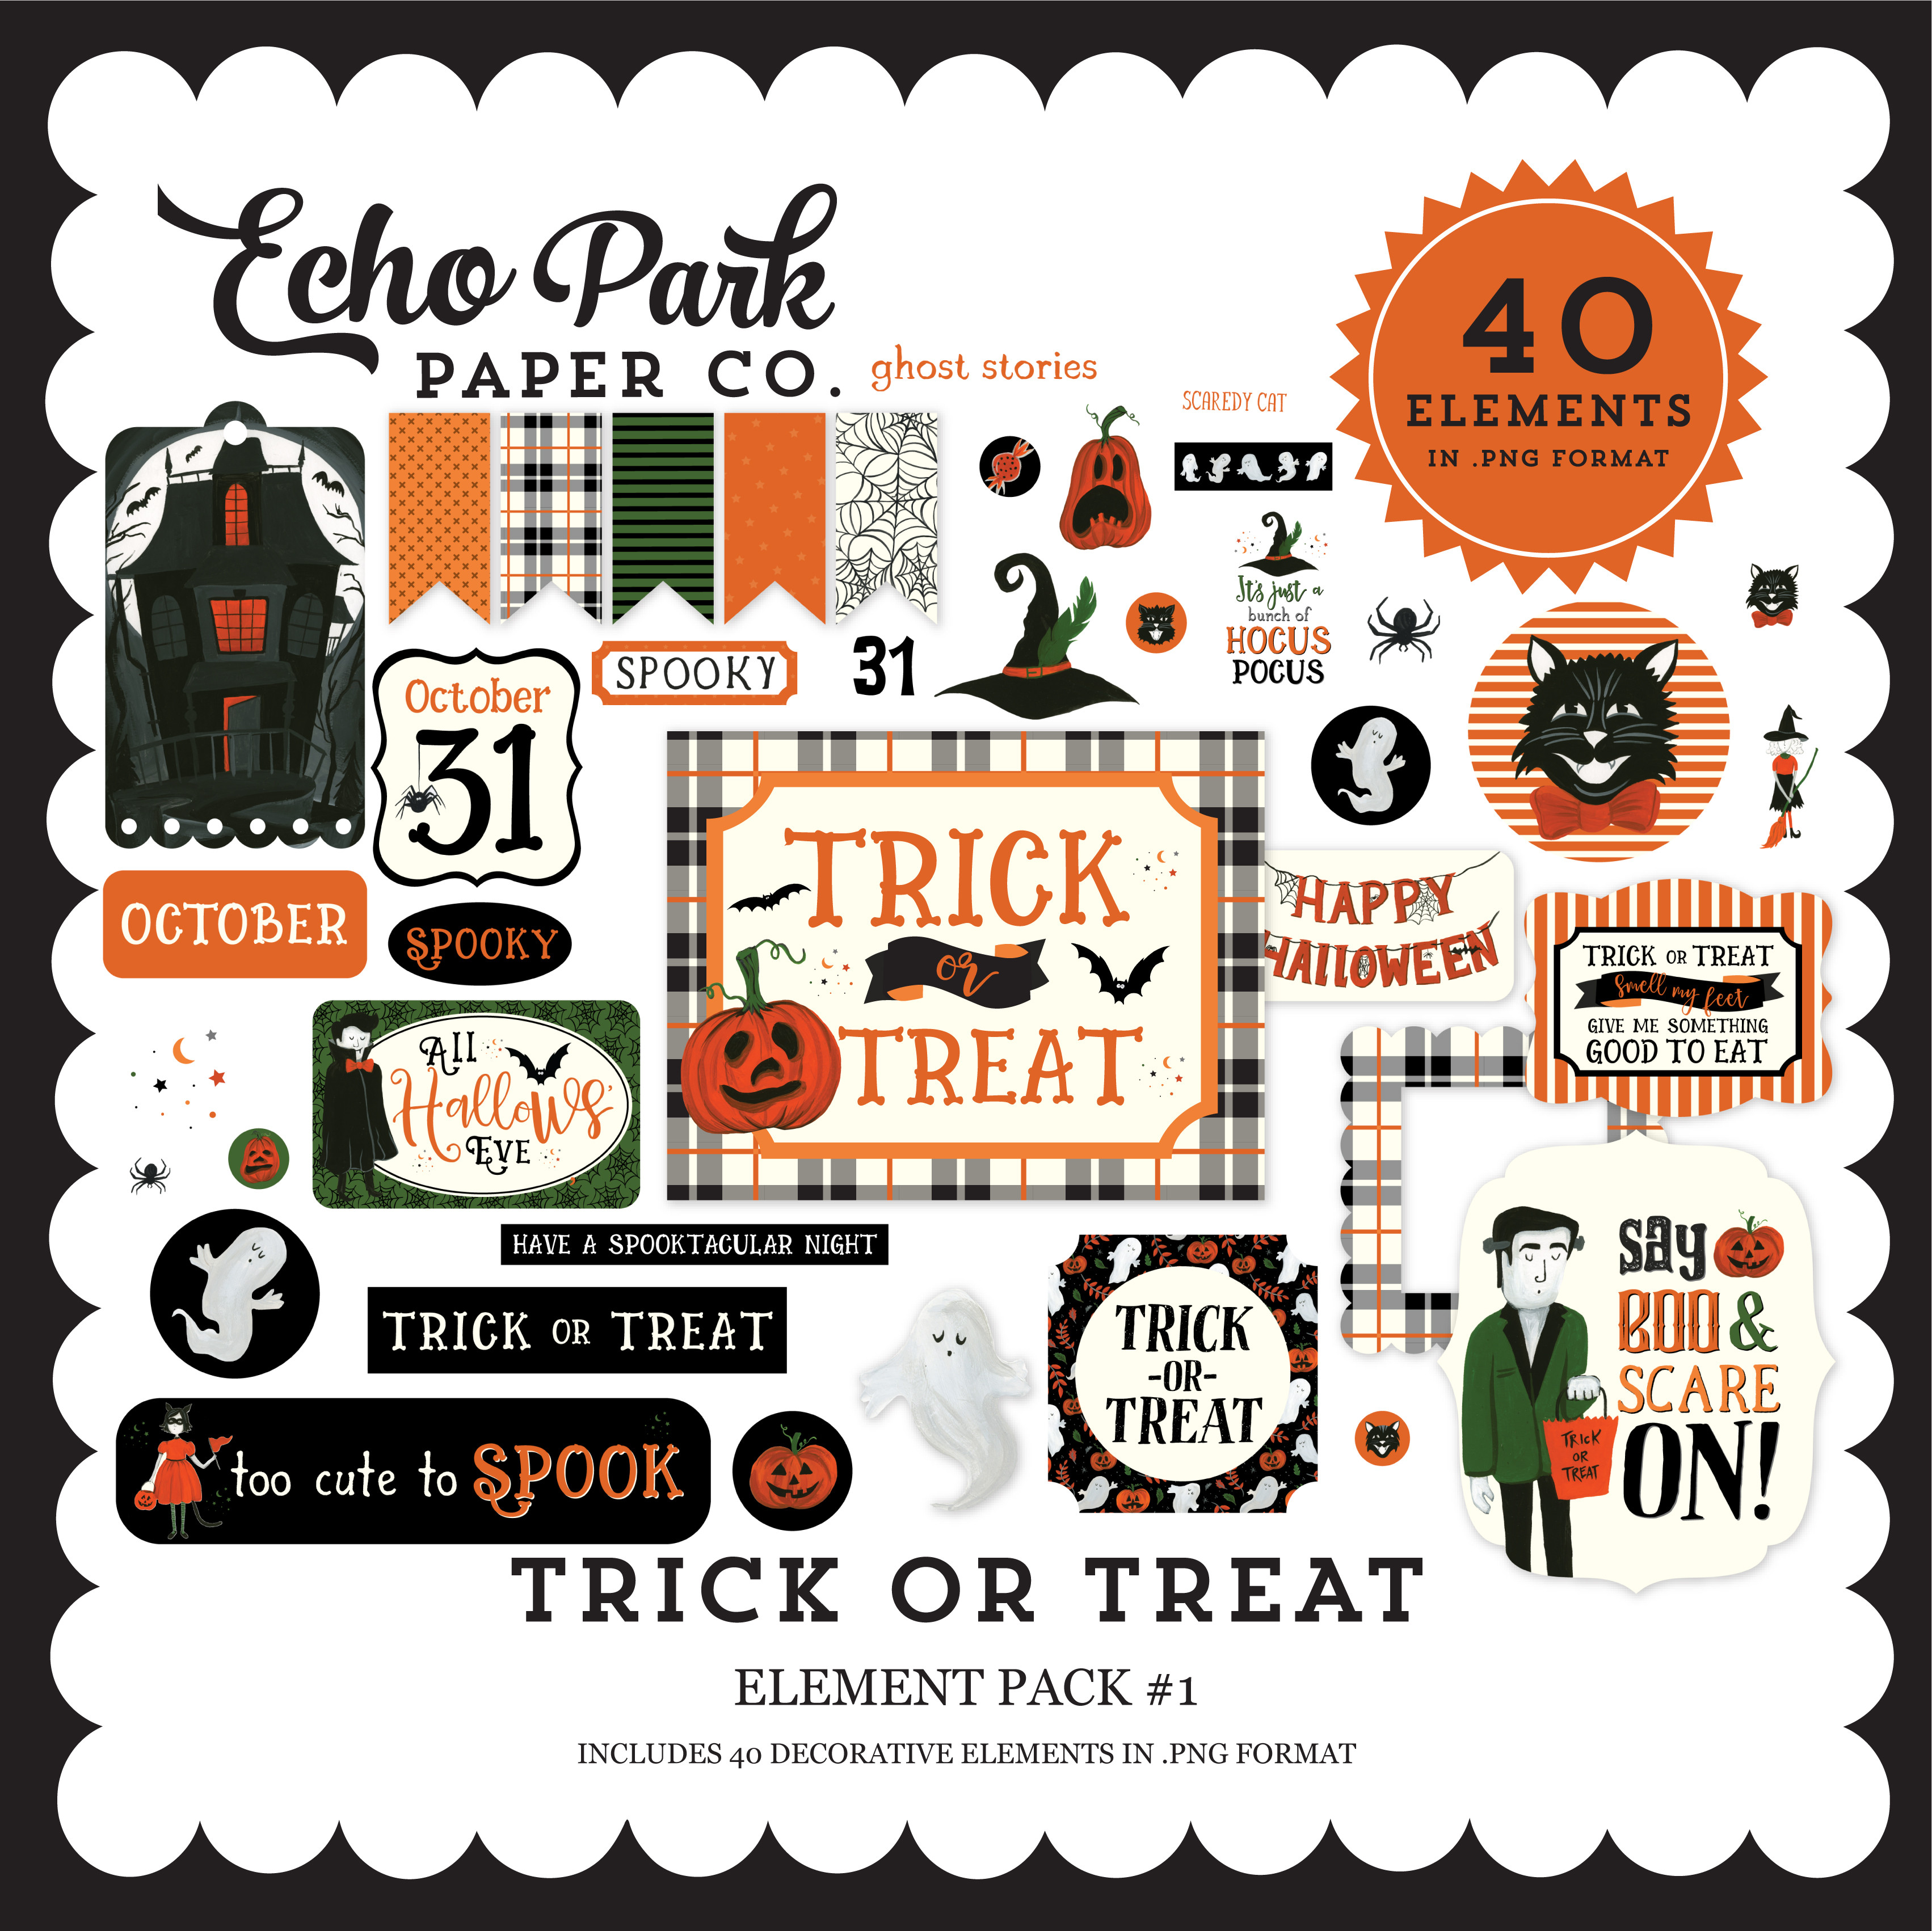 Trick or Treat Element Pack #1